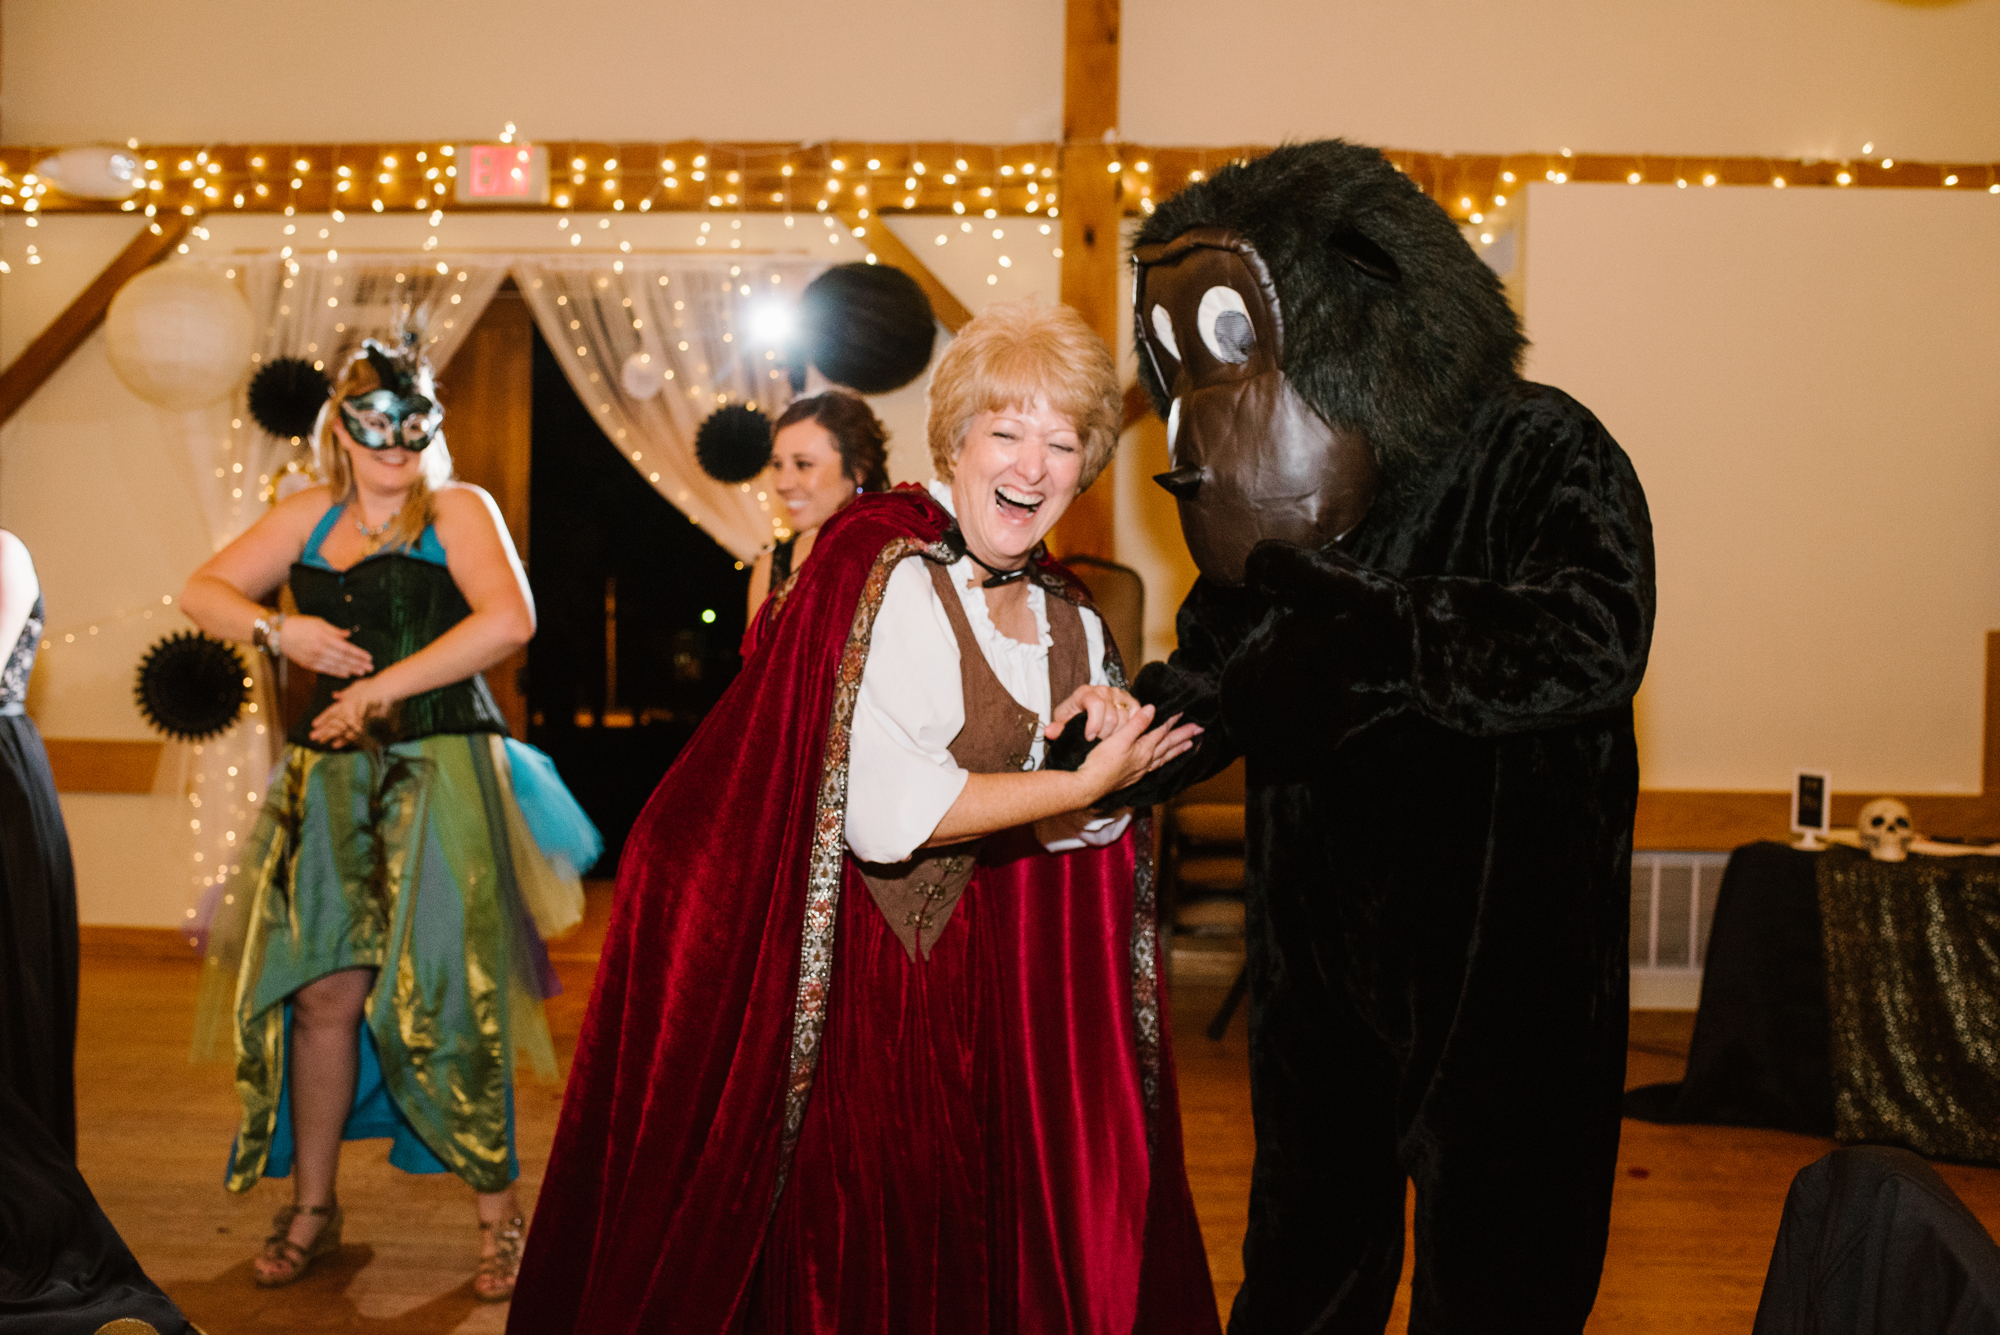 ann-arbor-michigan-halloween-themed-wedding-dancing-photos (16).jpg